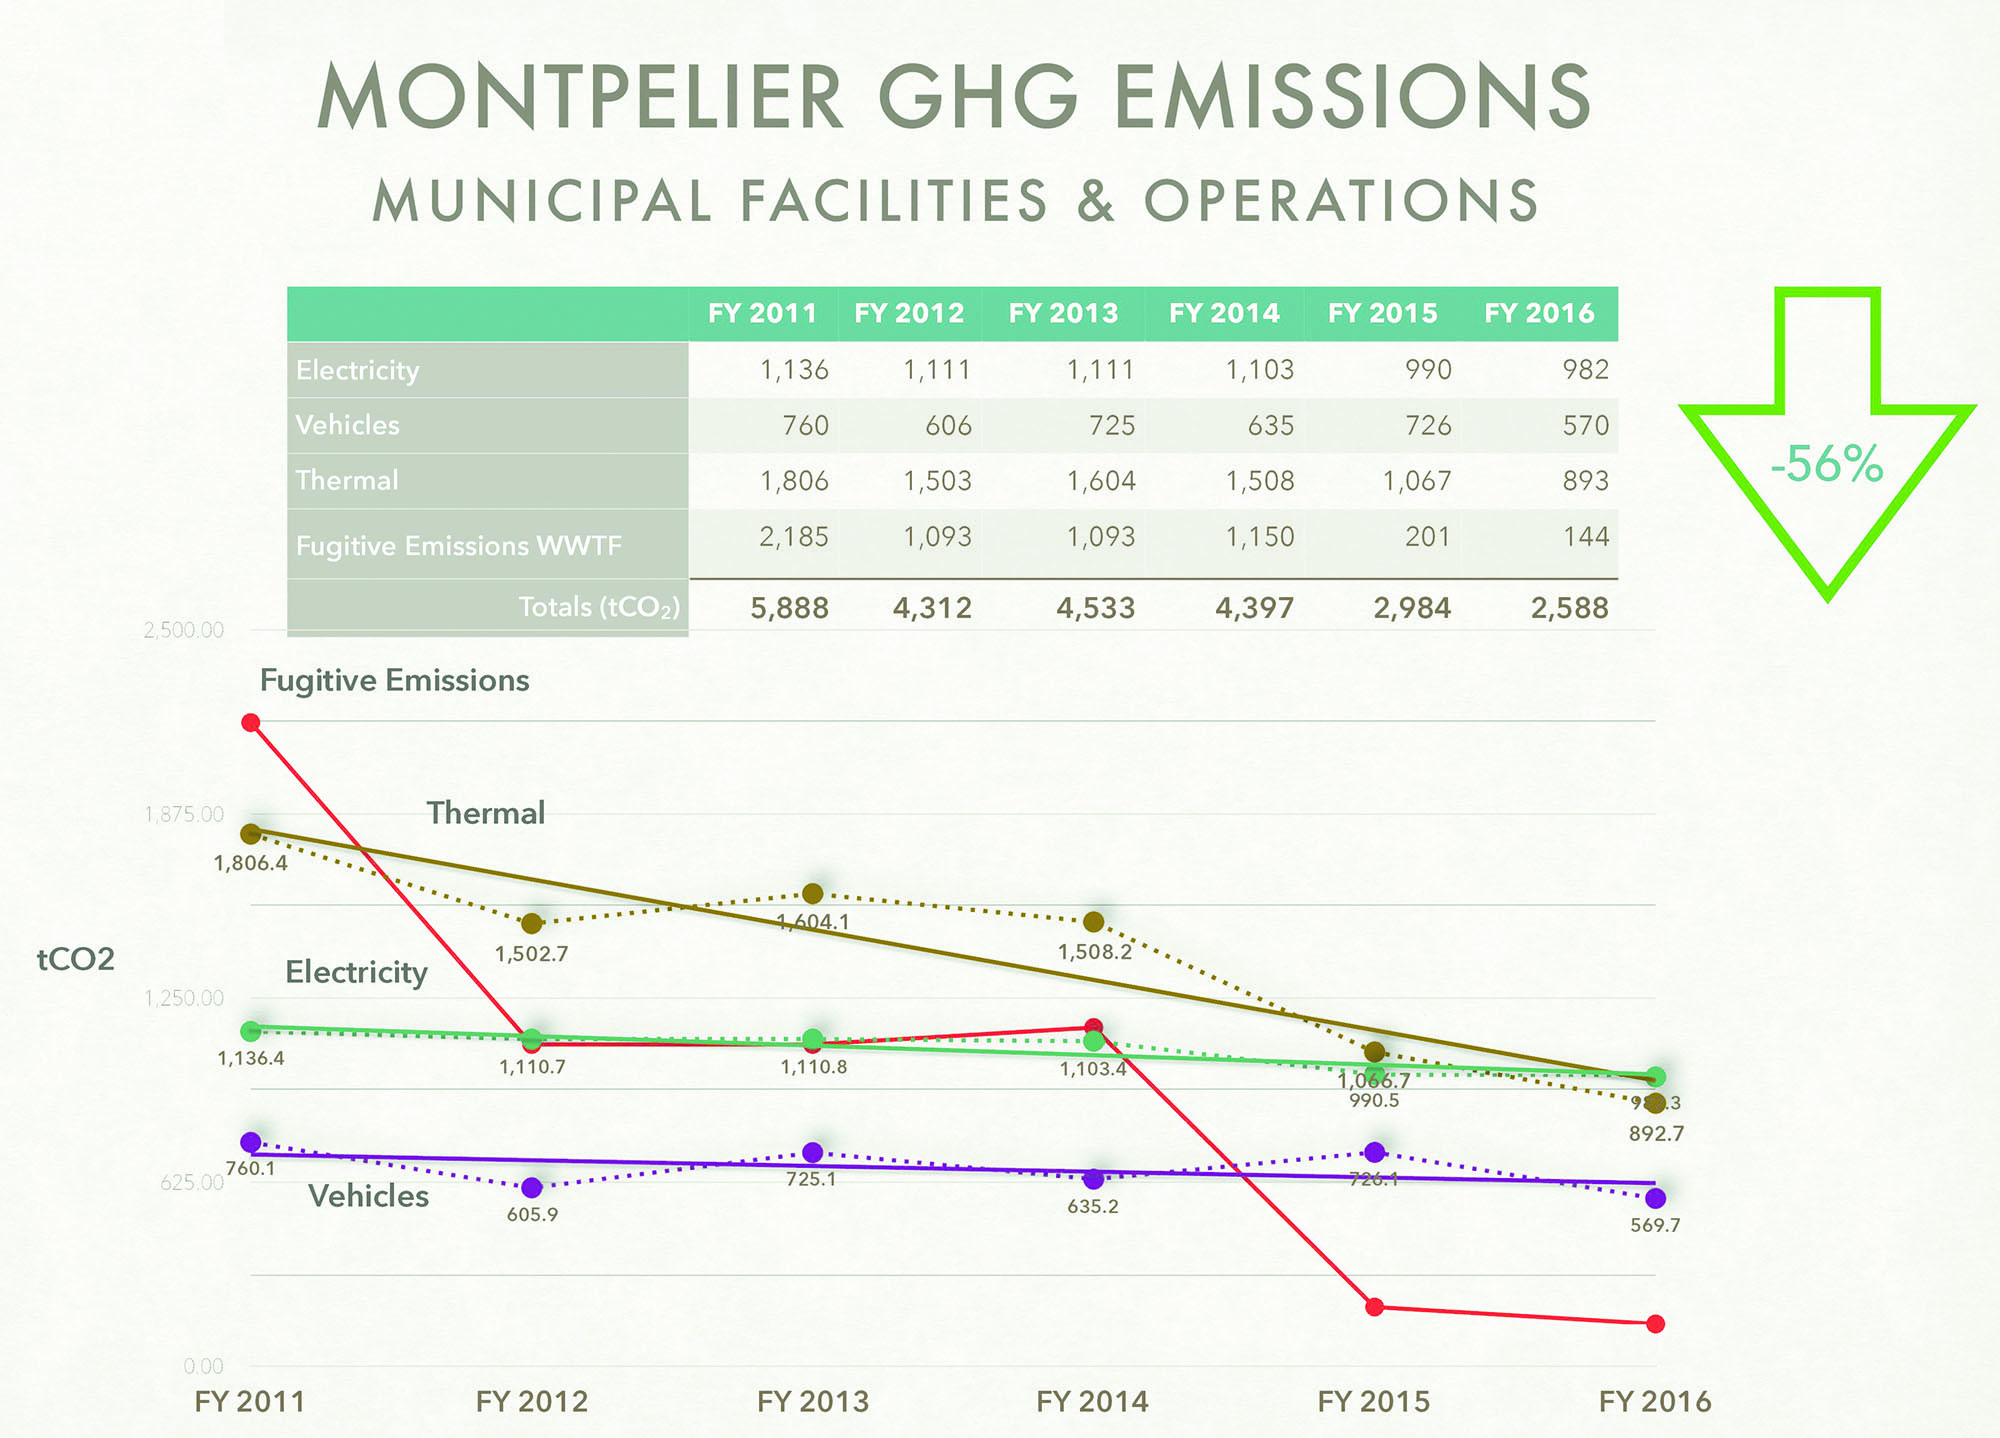 City of Montpelier greenhouse gas emissions from municipal facilities and operations 2011-2016